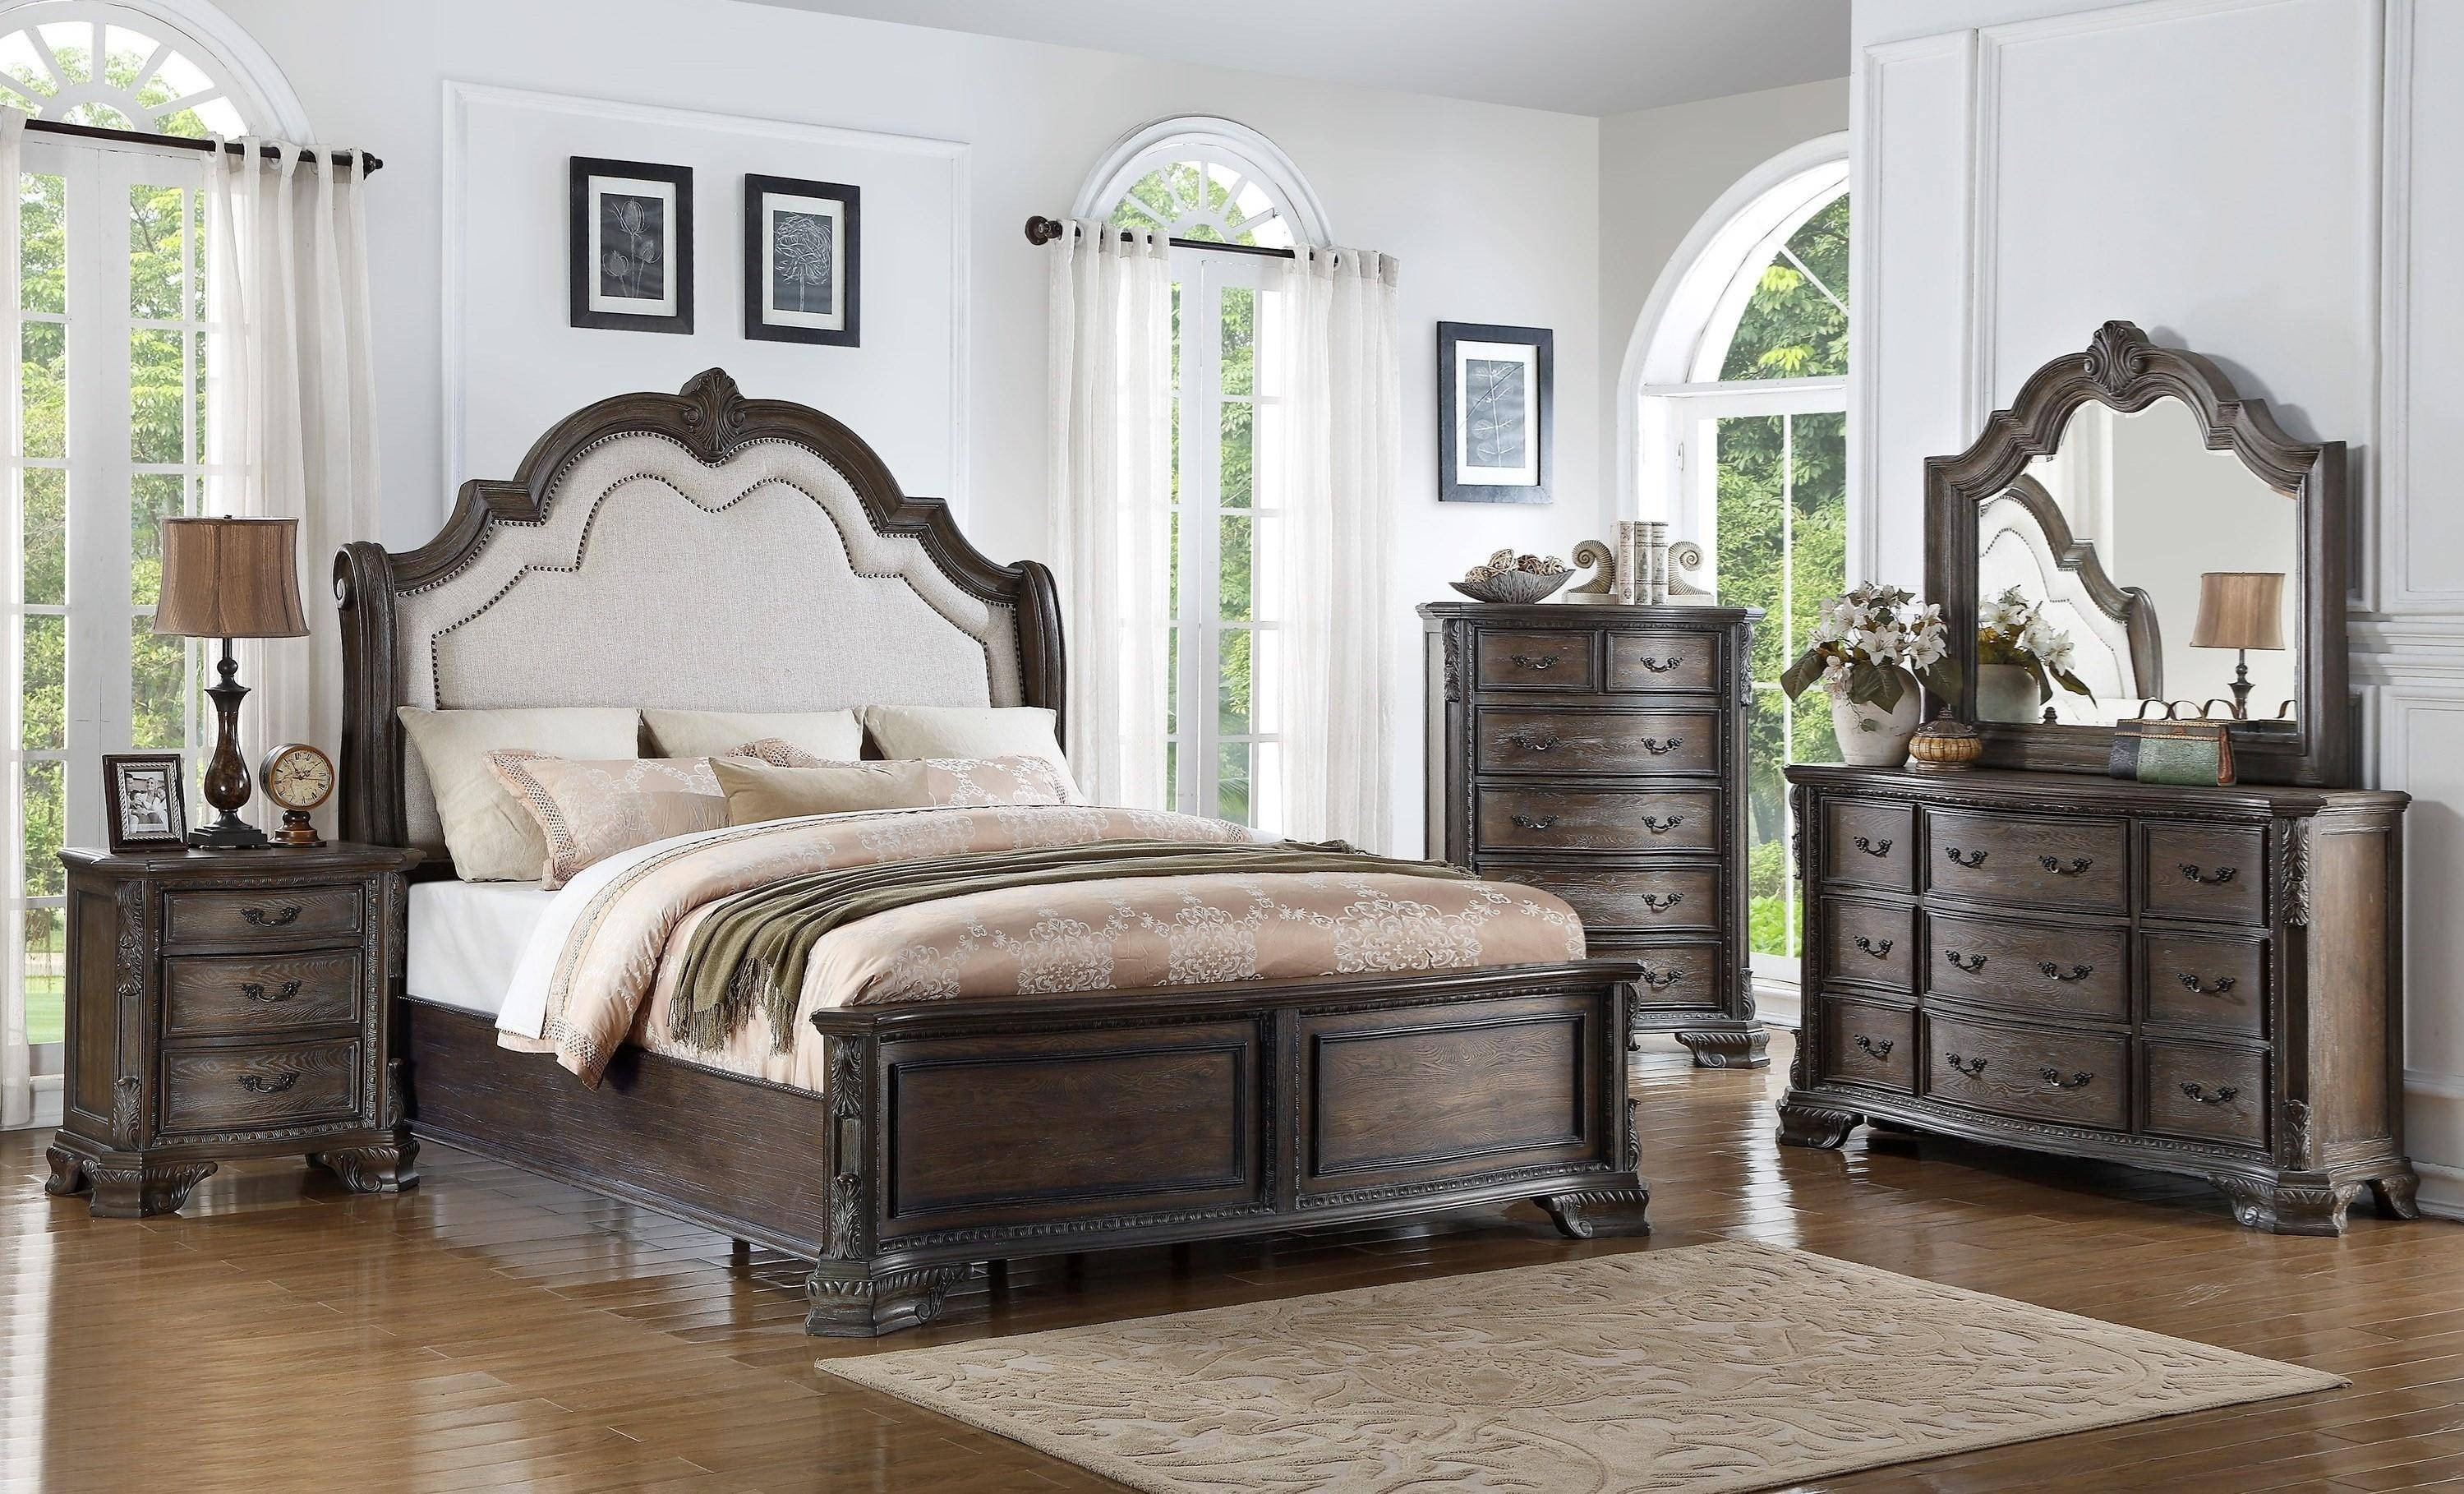 King Bedroom Set Cheap Fresh Crown Mark B1120 Sheffield Queen Panel Bed In Gray Fabric